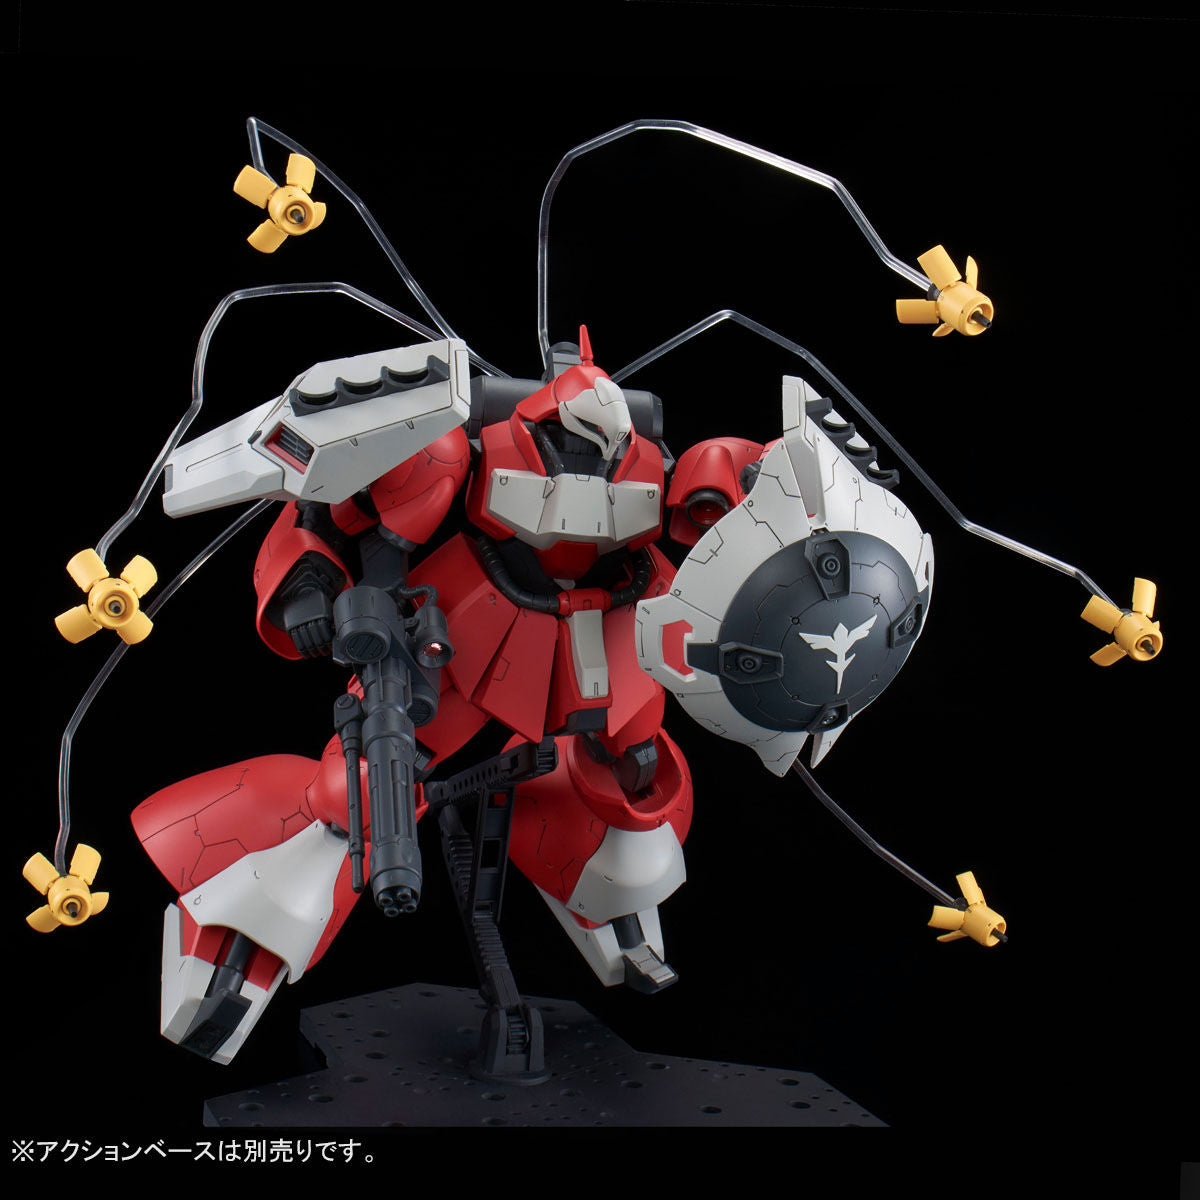 P-Bandai: RE/100 Jagd Doga Quess Paraya [IN STOCK]